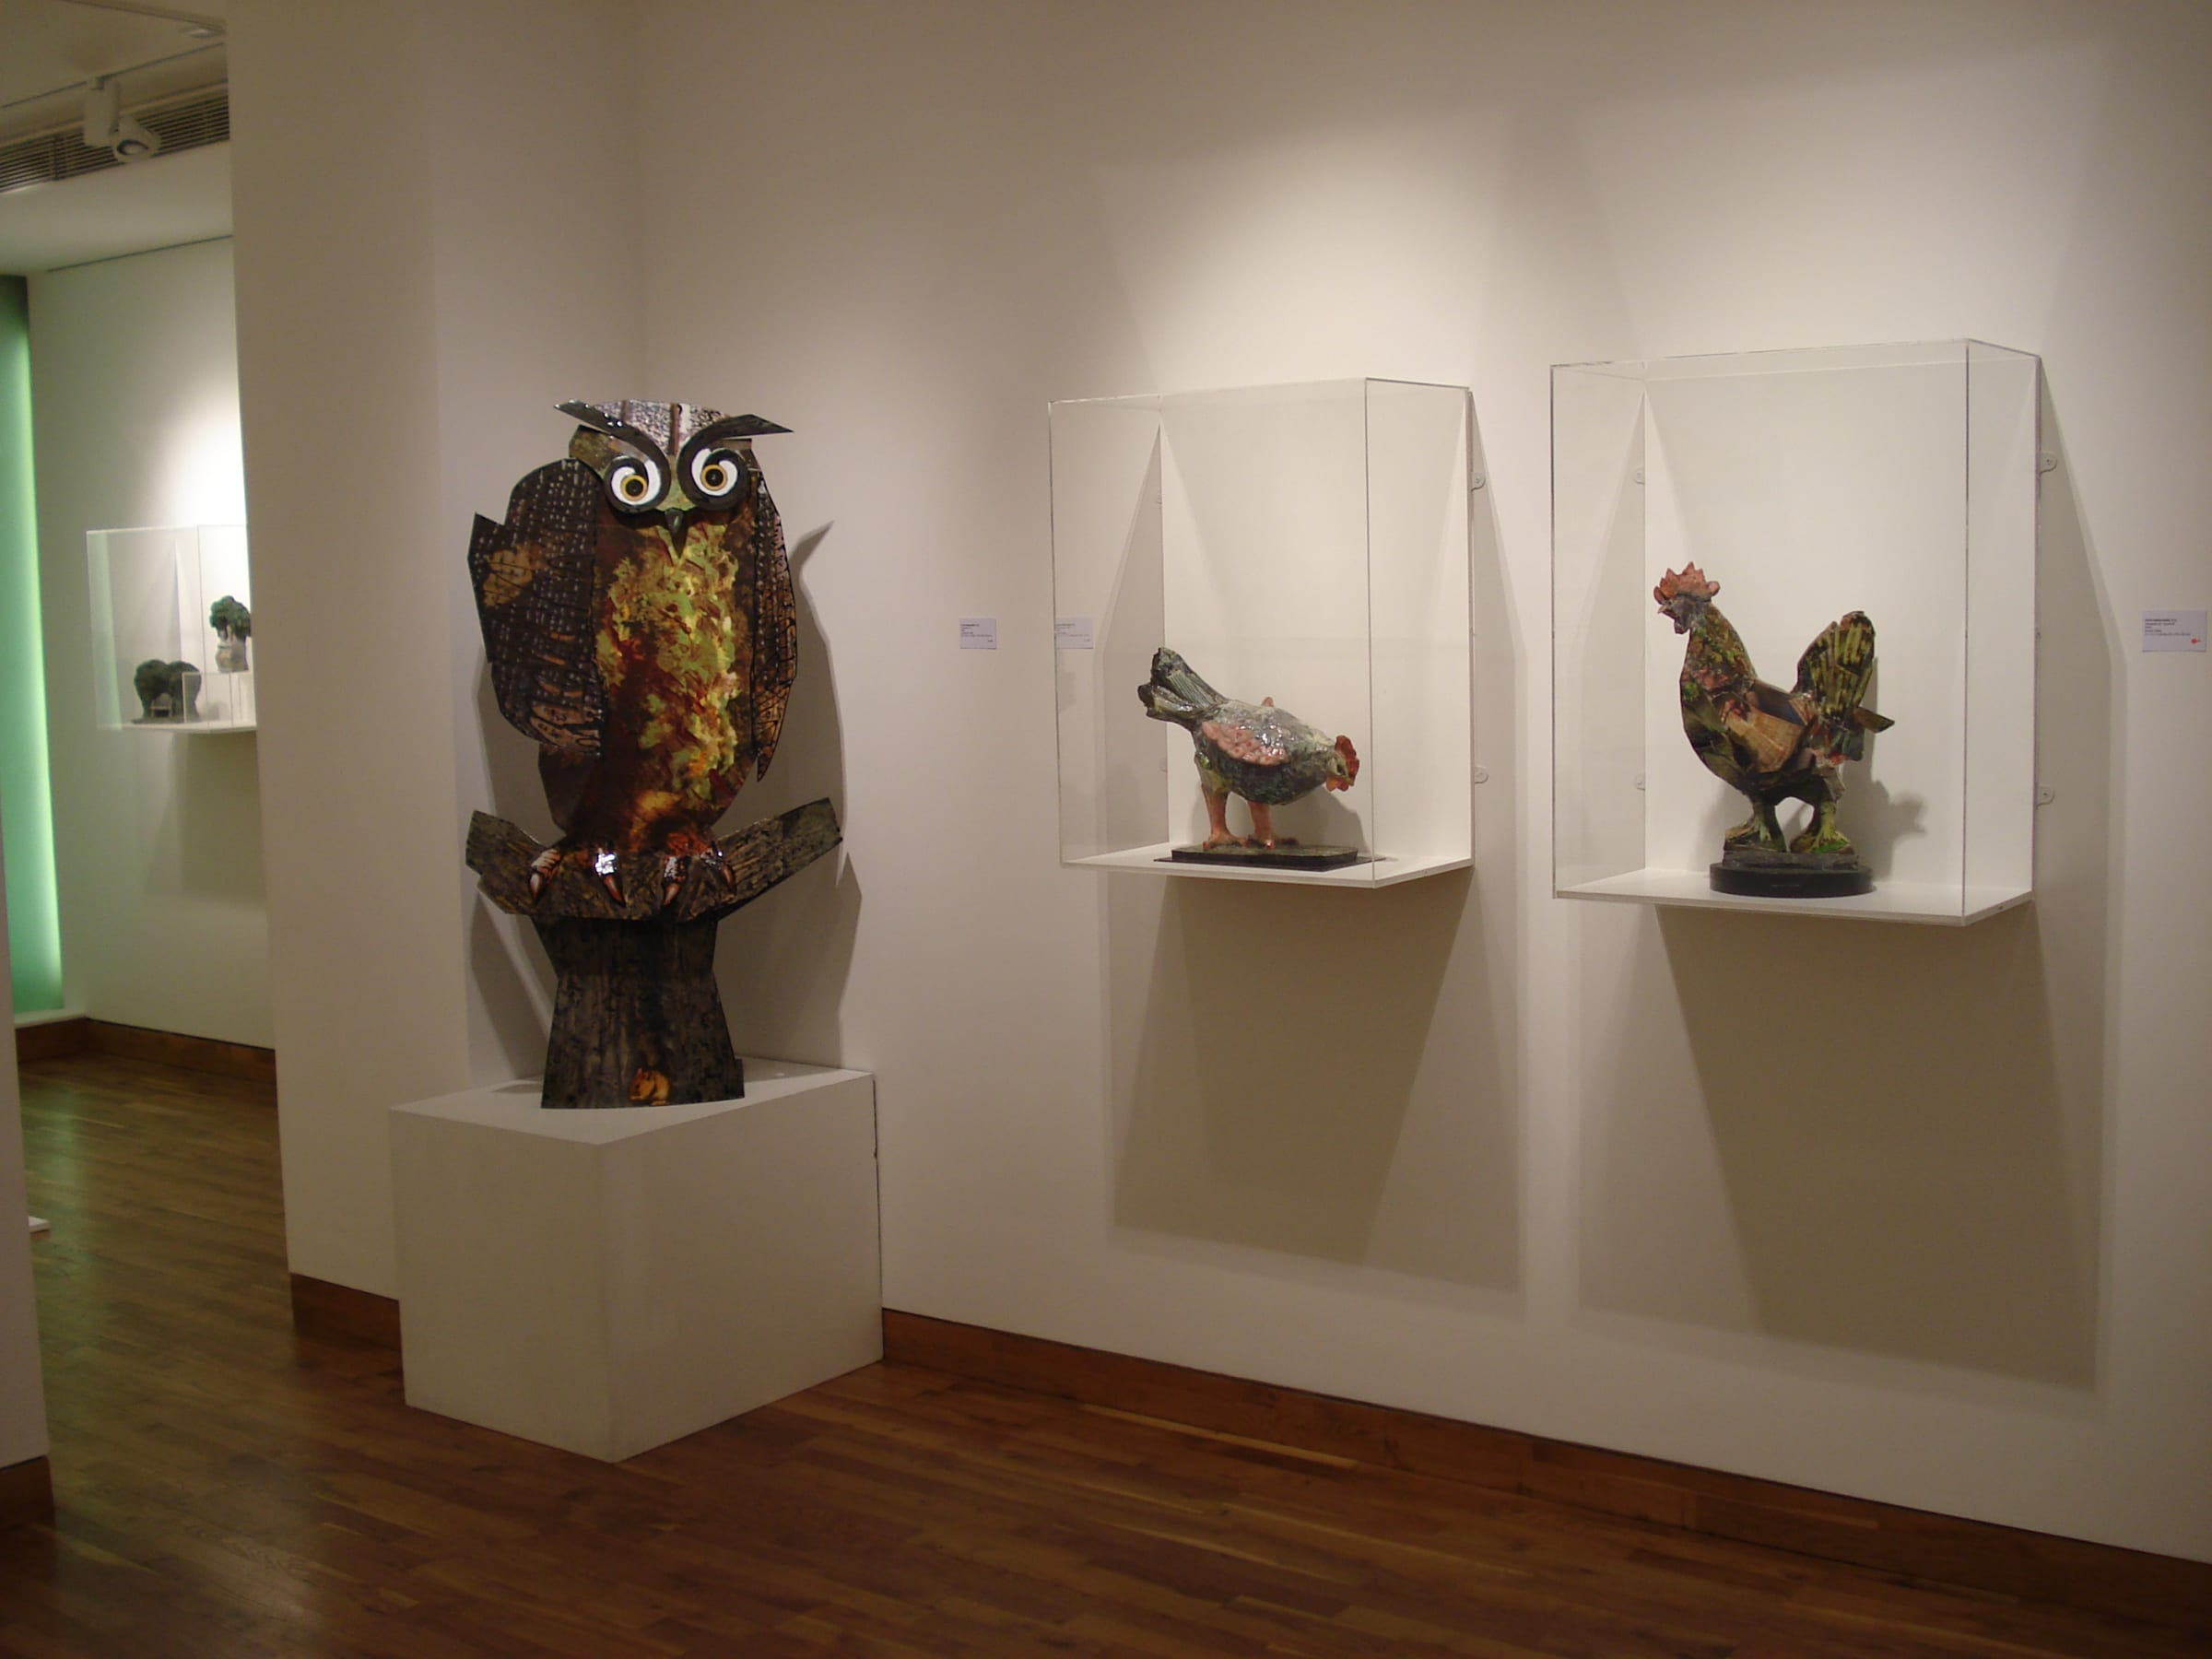 """<span class=""""link fancybox-details-link""""><a href=""""/exhibitions/103/works/image_standalone403/"""">View Detail Page</a></span><p>IVOR ABRAHAMS RA   PAINTED SCULPTURE   04 FEB - 21 FEB 2008   Installation View</p>"""